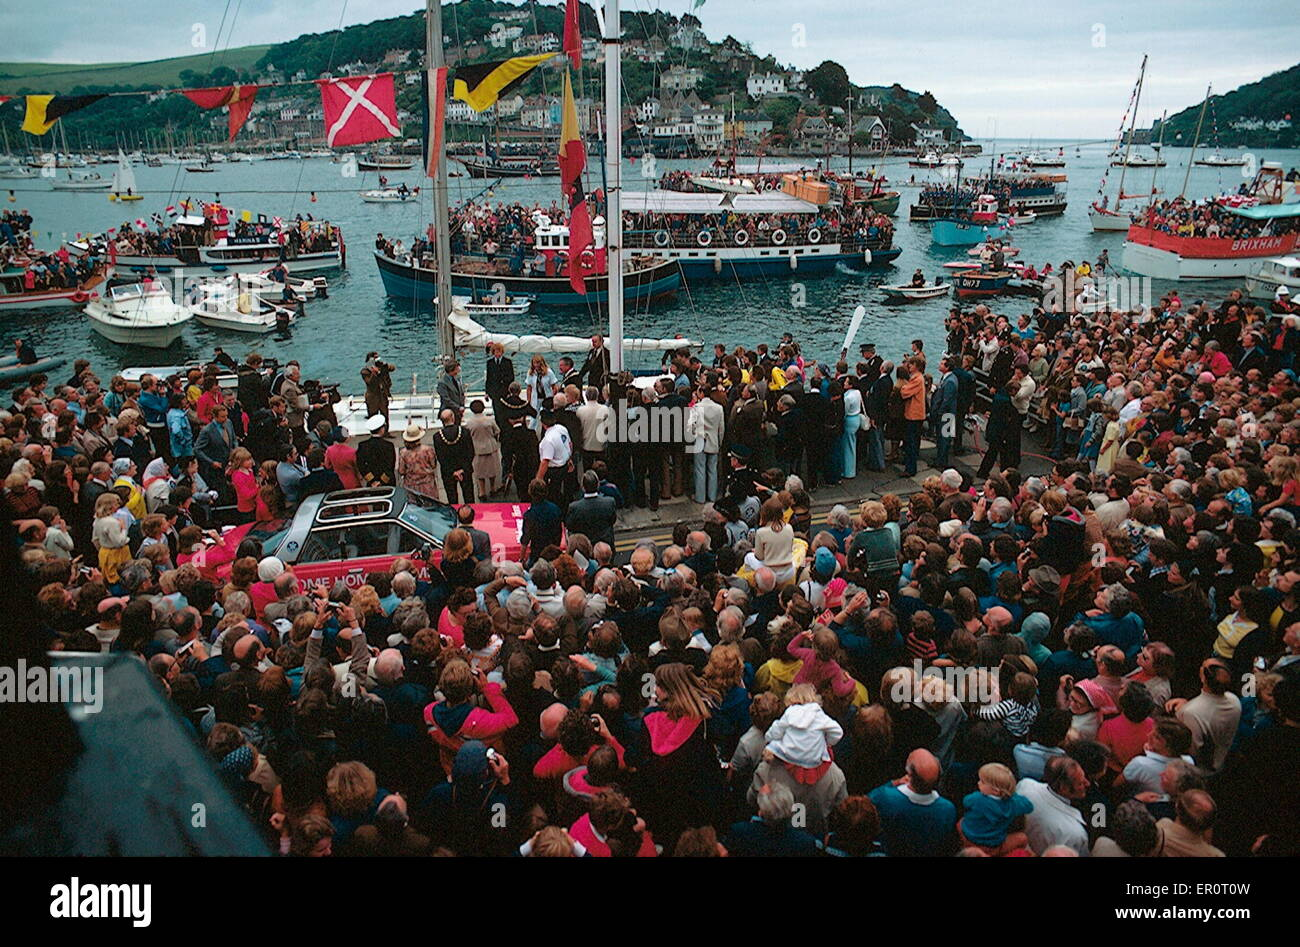 AJAXNETPHOTO. 8TH JUNE, 1978. DARTMOUTH, ENGLAND. - WELCOMING CROWDS - ROUND THE WORLD YACHTSWOMAN NAOMI JAMES (CENTRE.) - Stock Image